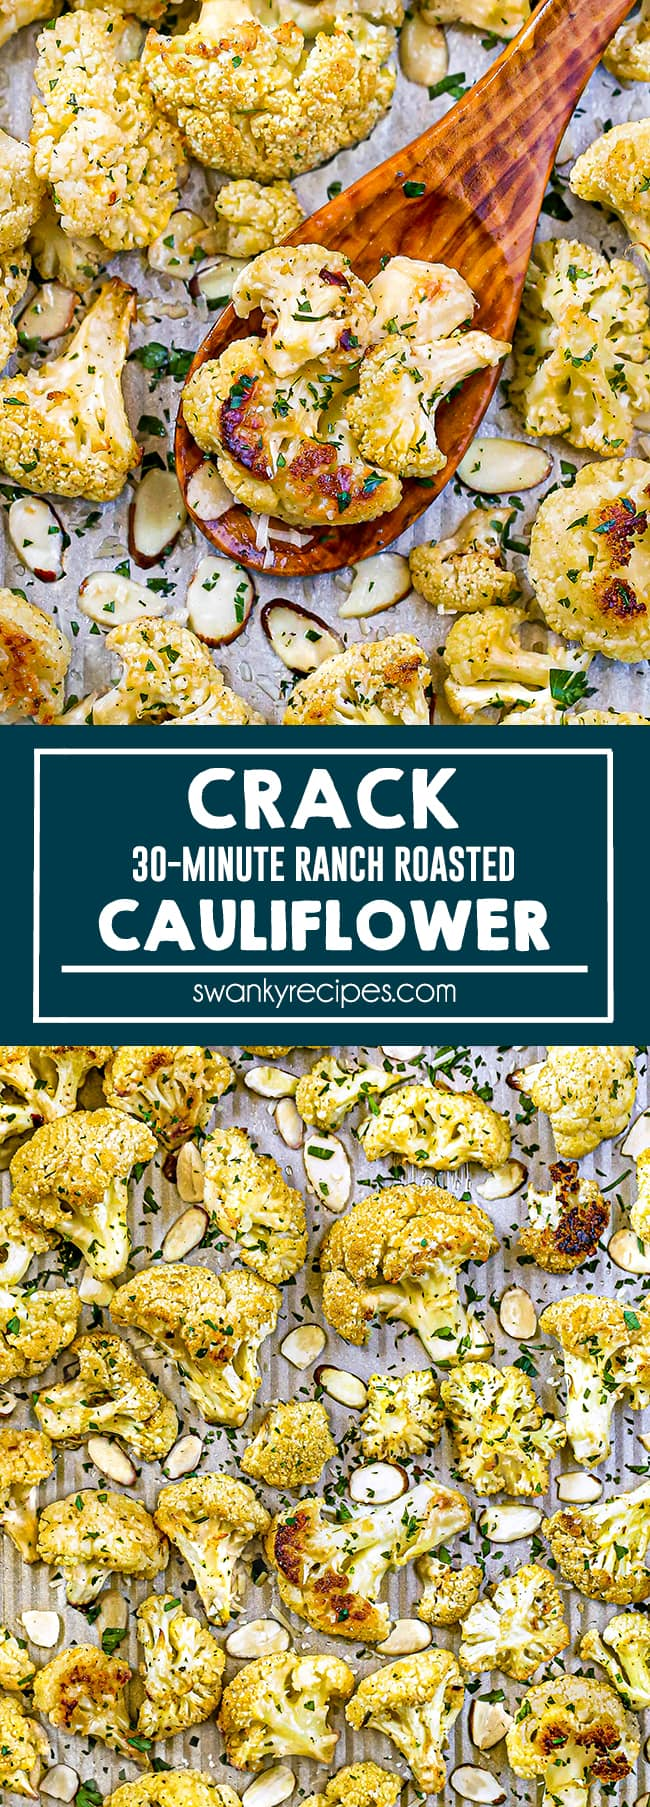 Crack Cauliflower - A cropped image of cauliflower florets served on a sheet pan with a wooden spoon in the center, sliced almonds and parsley. Text in center reads Crack Cauliflower. Second image is an overhead view of florets roasted on a sheet pan.